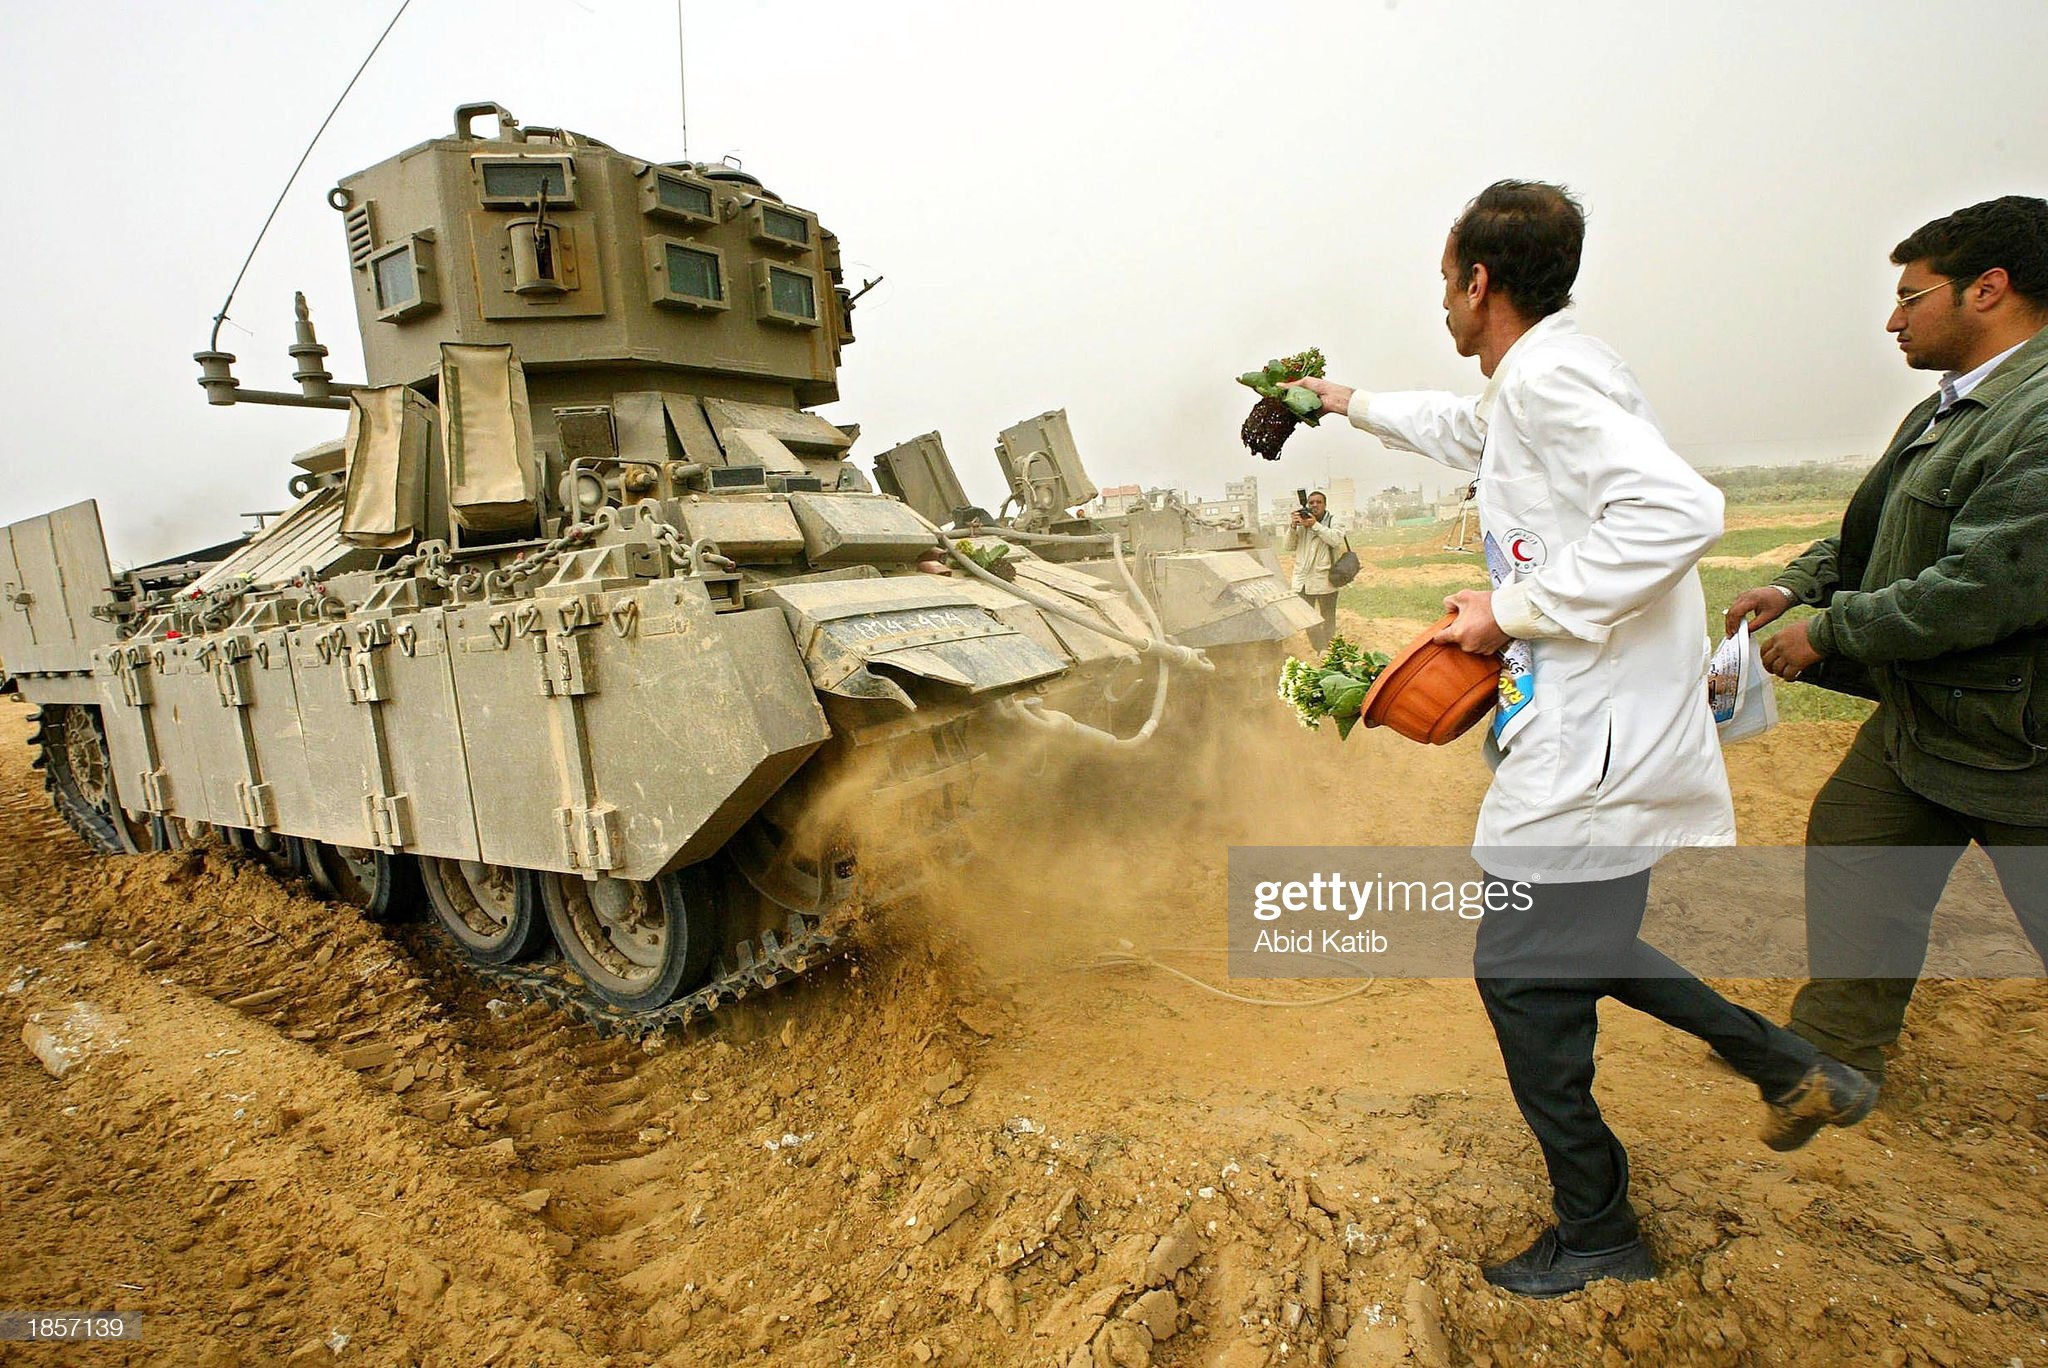 https://media.gettyimages.com/photos/palestinian-doctor-samer-nassr-allah-tosses-flowers-at-an-israel-tank-picture-id1857139?s=2048x2048